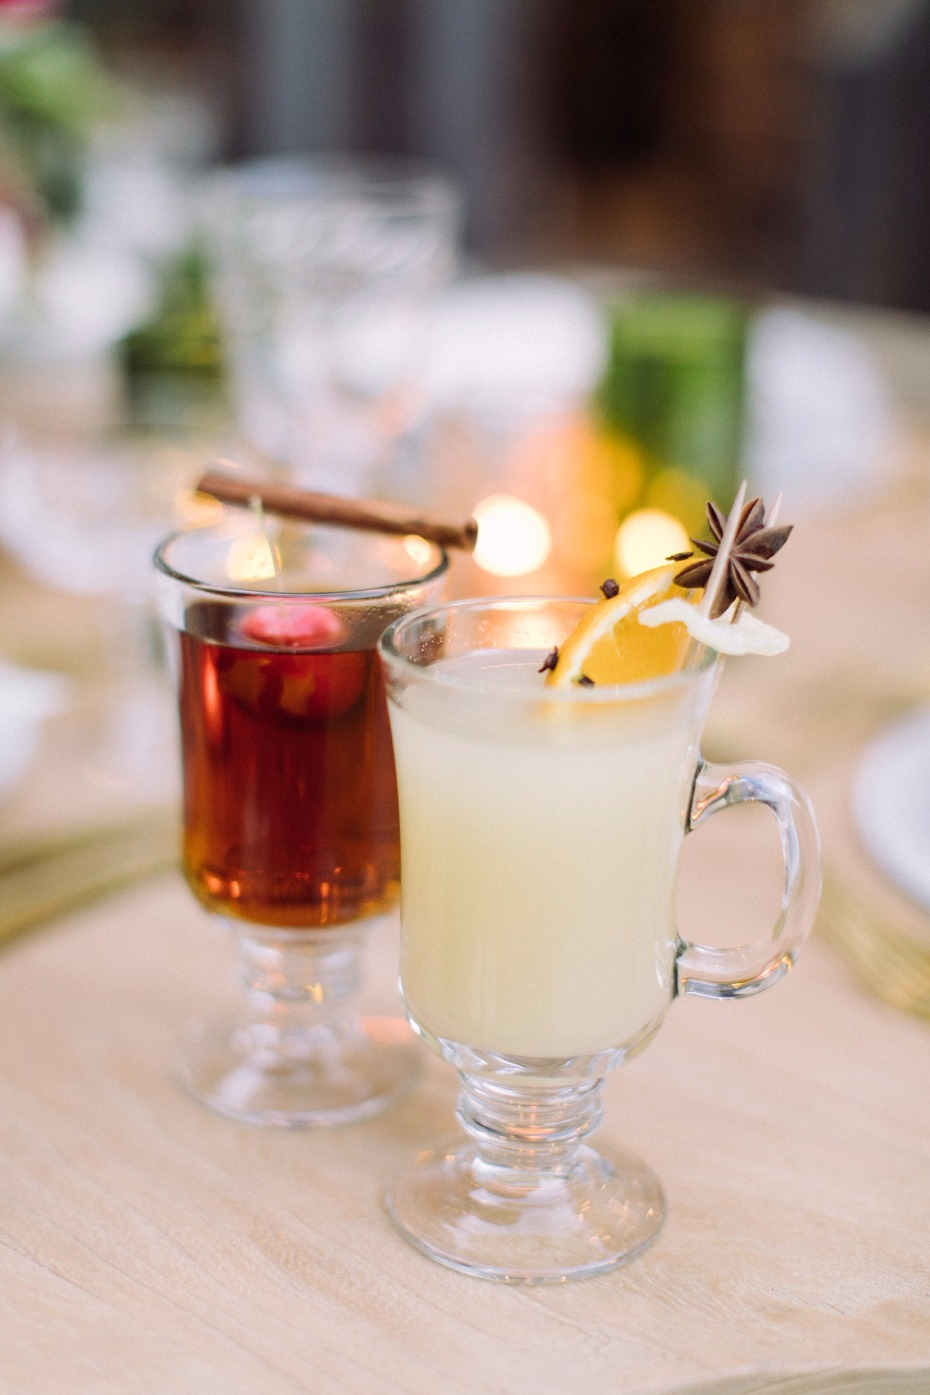 Mulled Cider Cocktails are Having a Total Moment